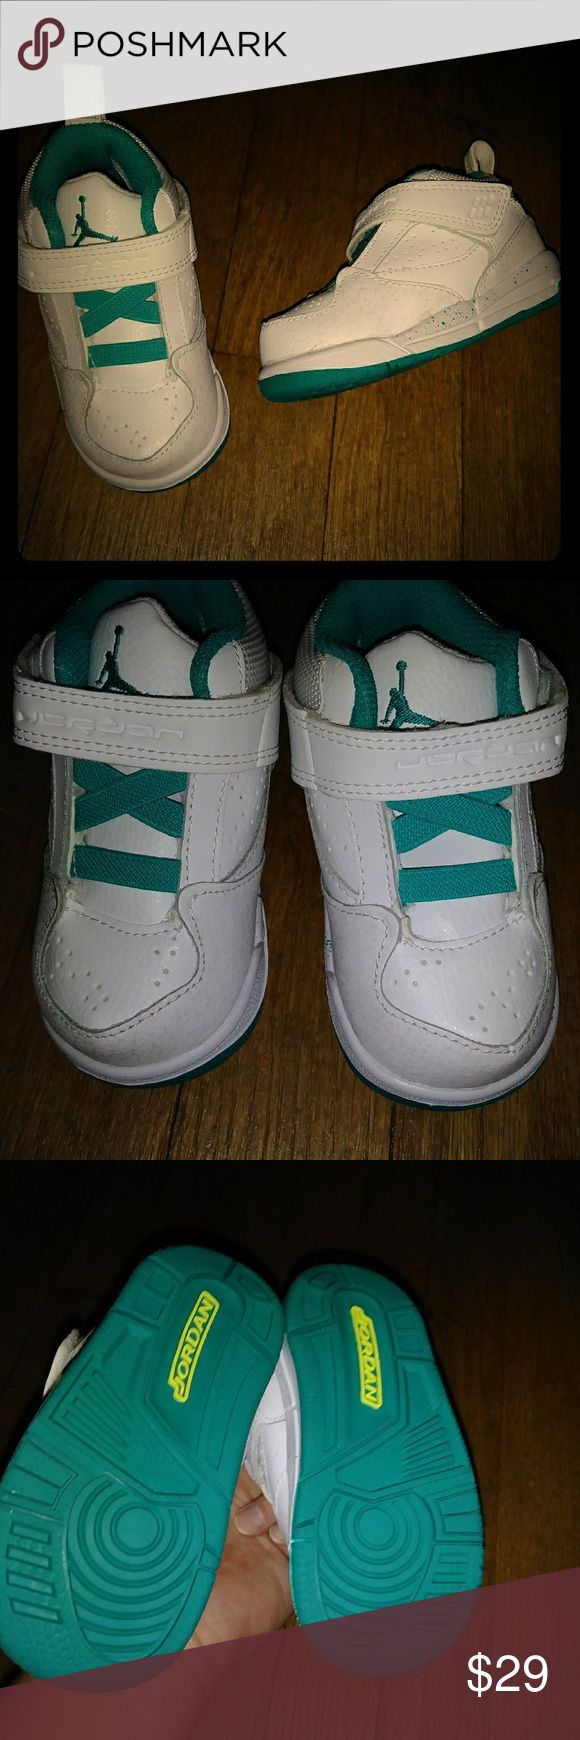 Toddler Jordans Size 5c New never worn but did try on my daughter.. please check pic 4 for spot on top of one shoe. I think it is where my daughter tried to put it on. Pretty sure it will come off I just didn't want to mess with it Jordan Shoes